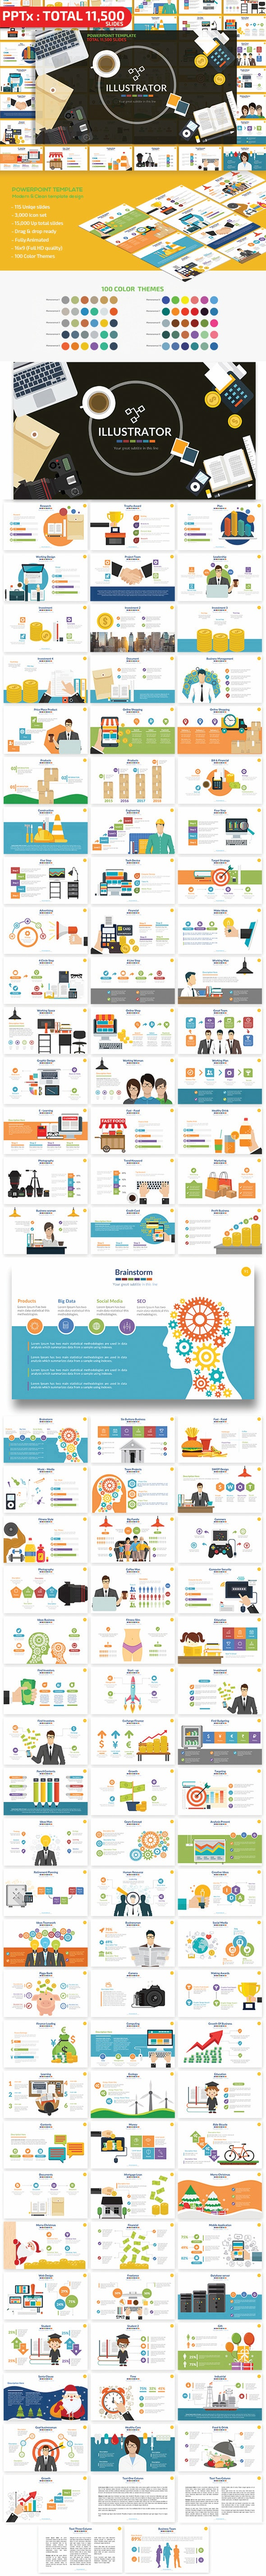 Illustrator Powerpoint Presentation - PowerPoint Templates Presentation Templates